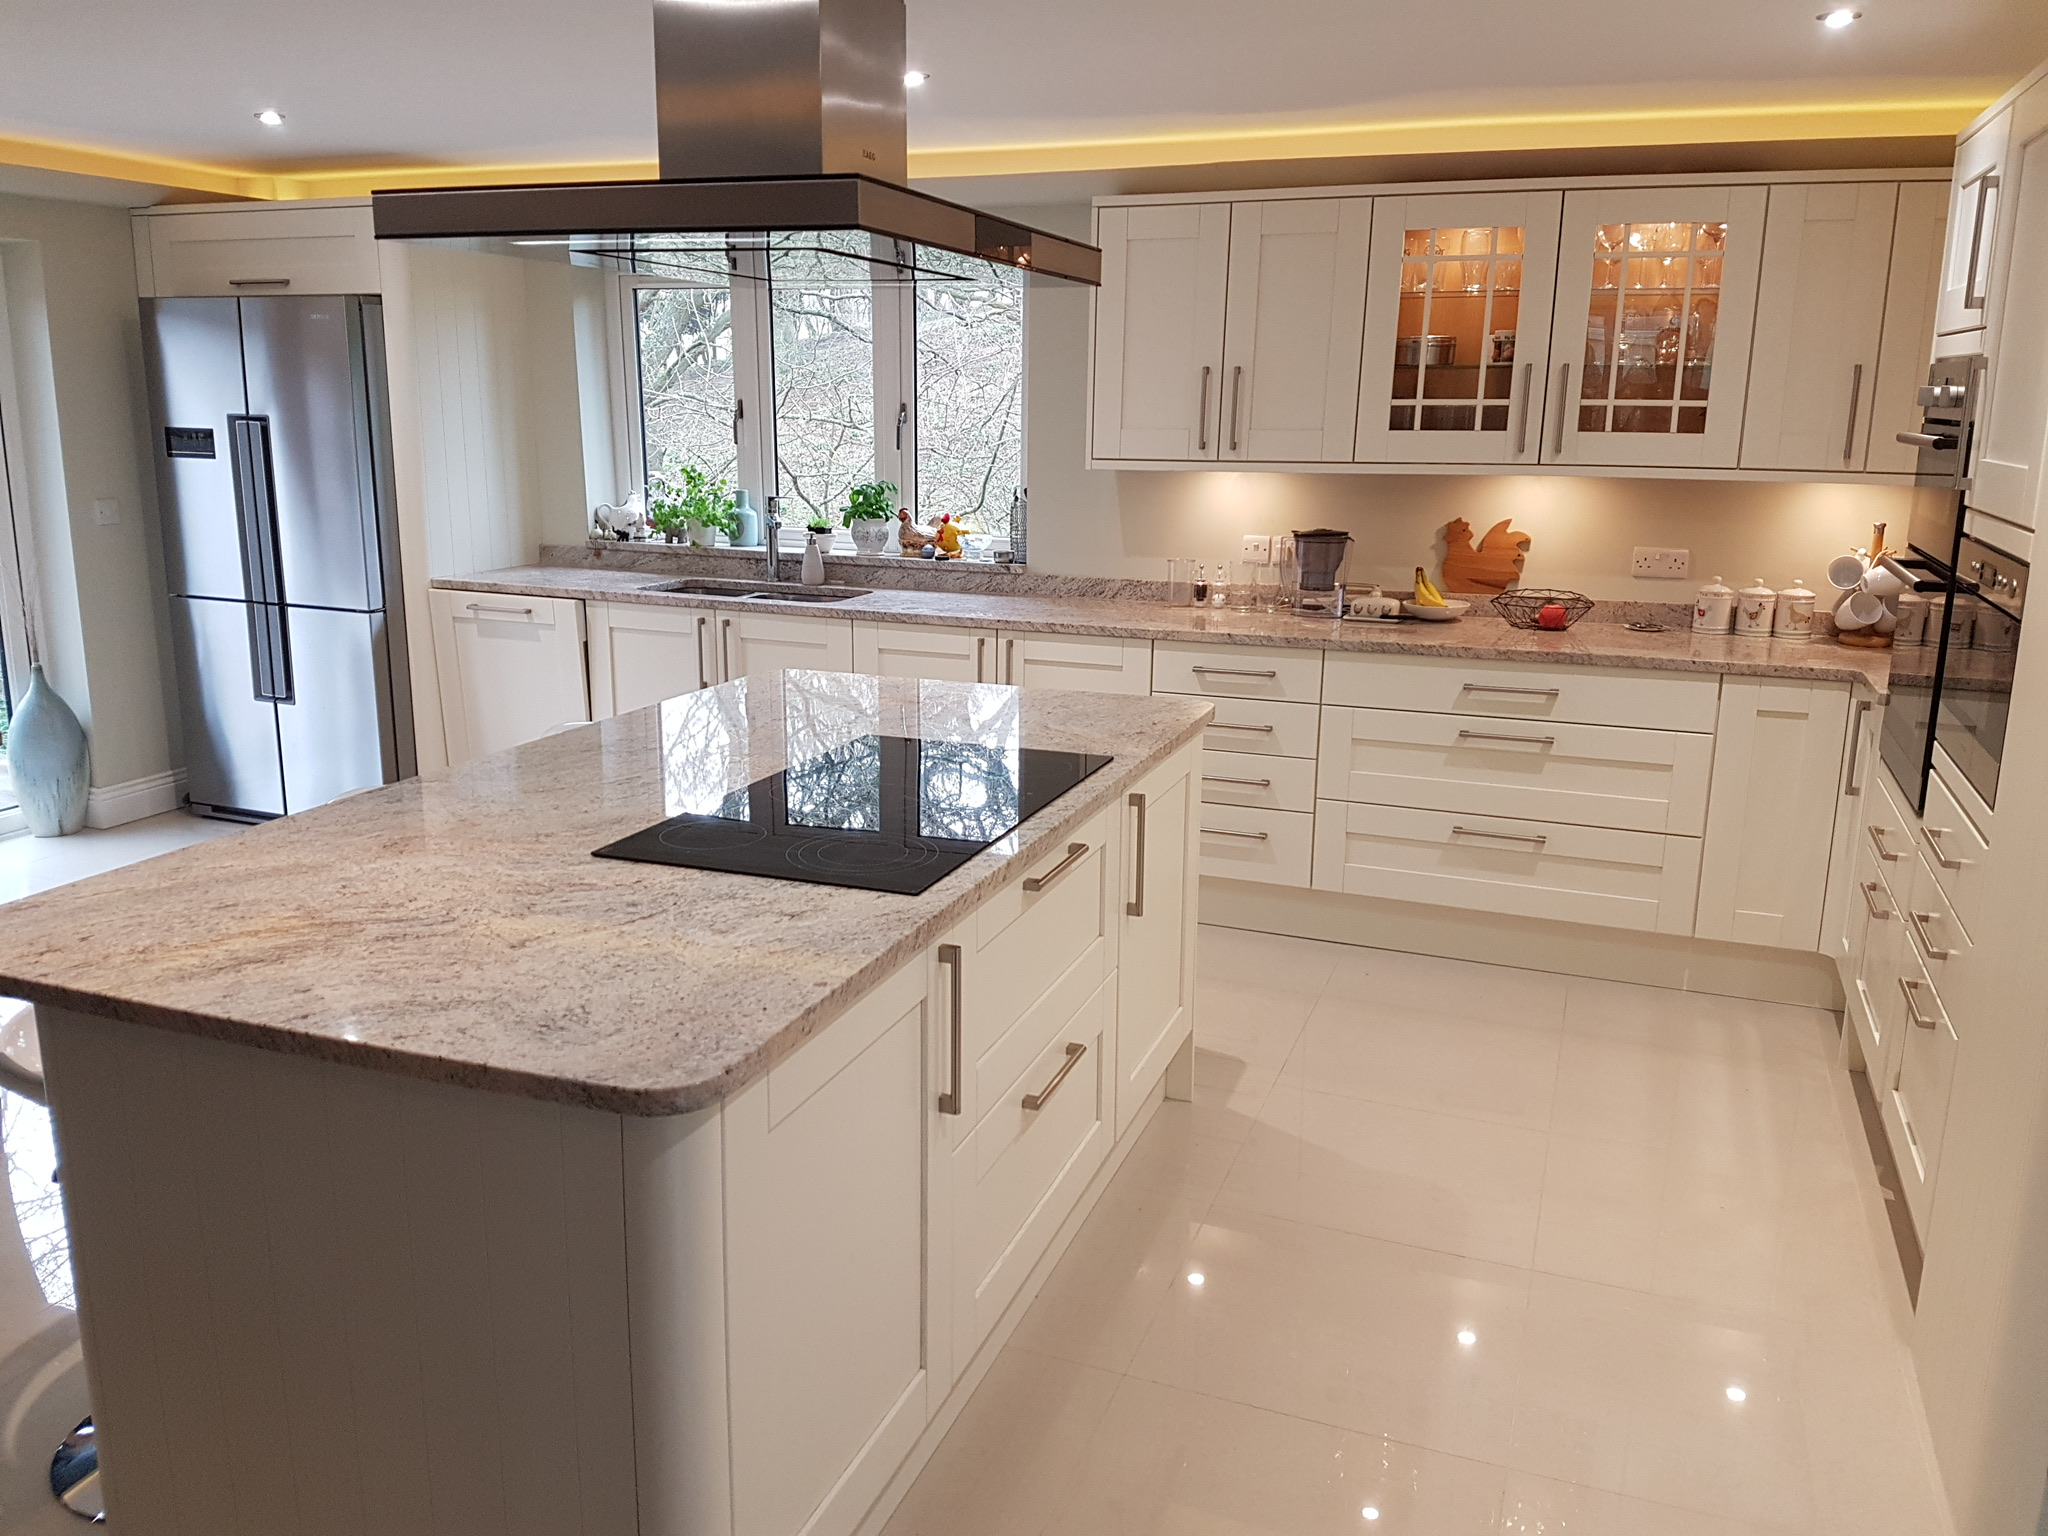 Full kitchen installation